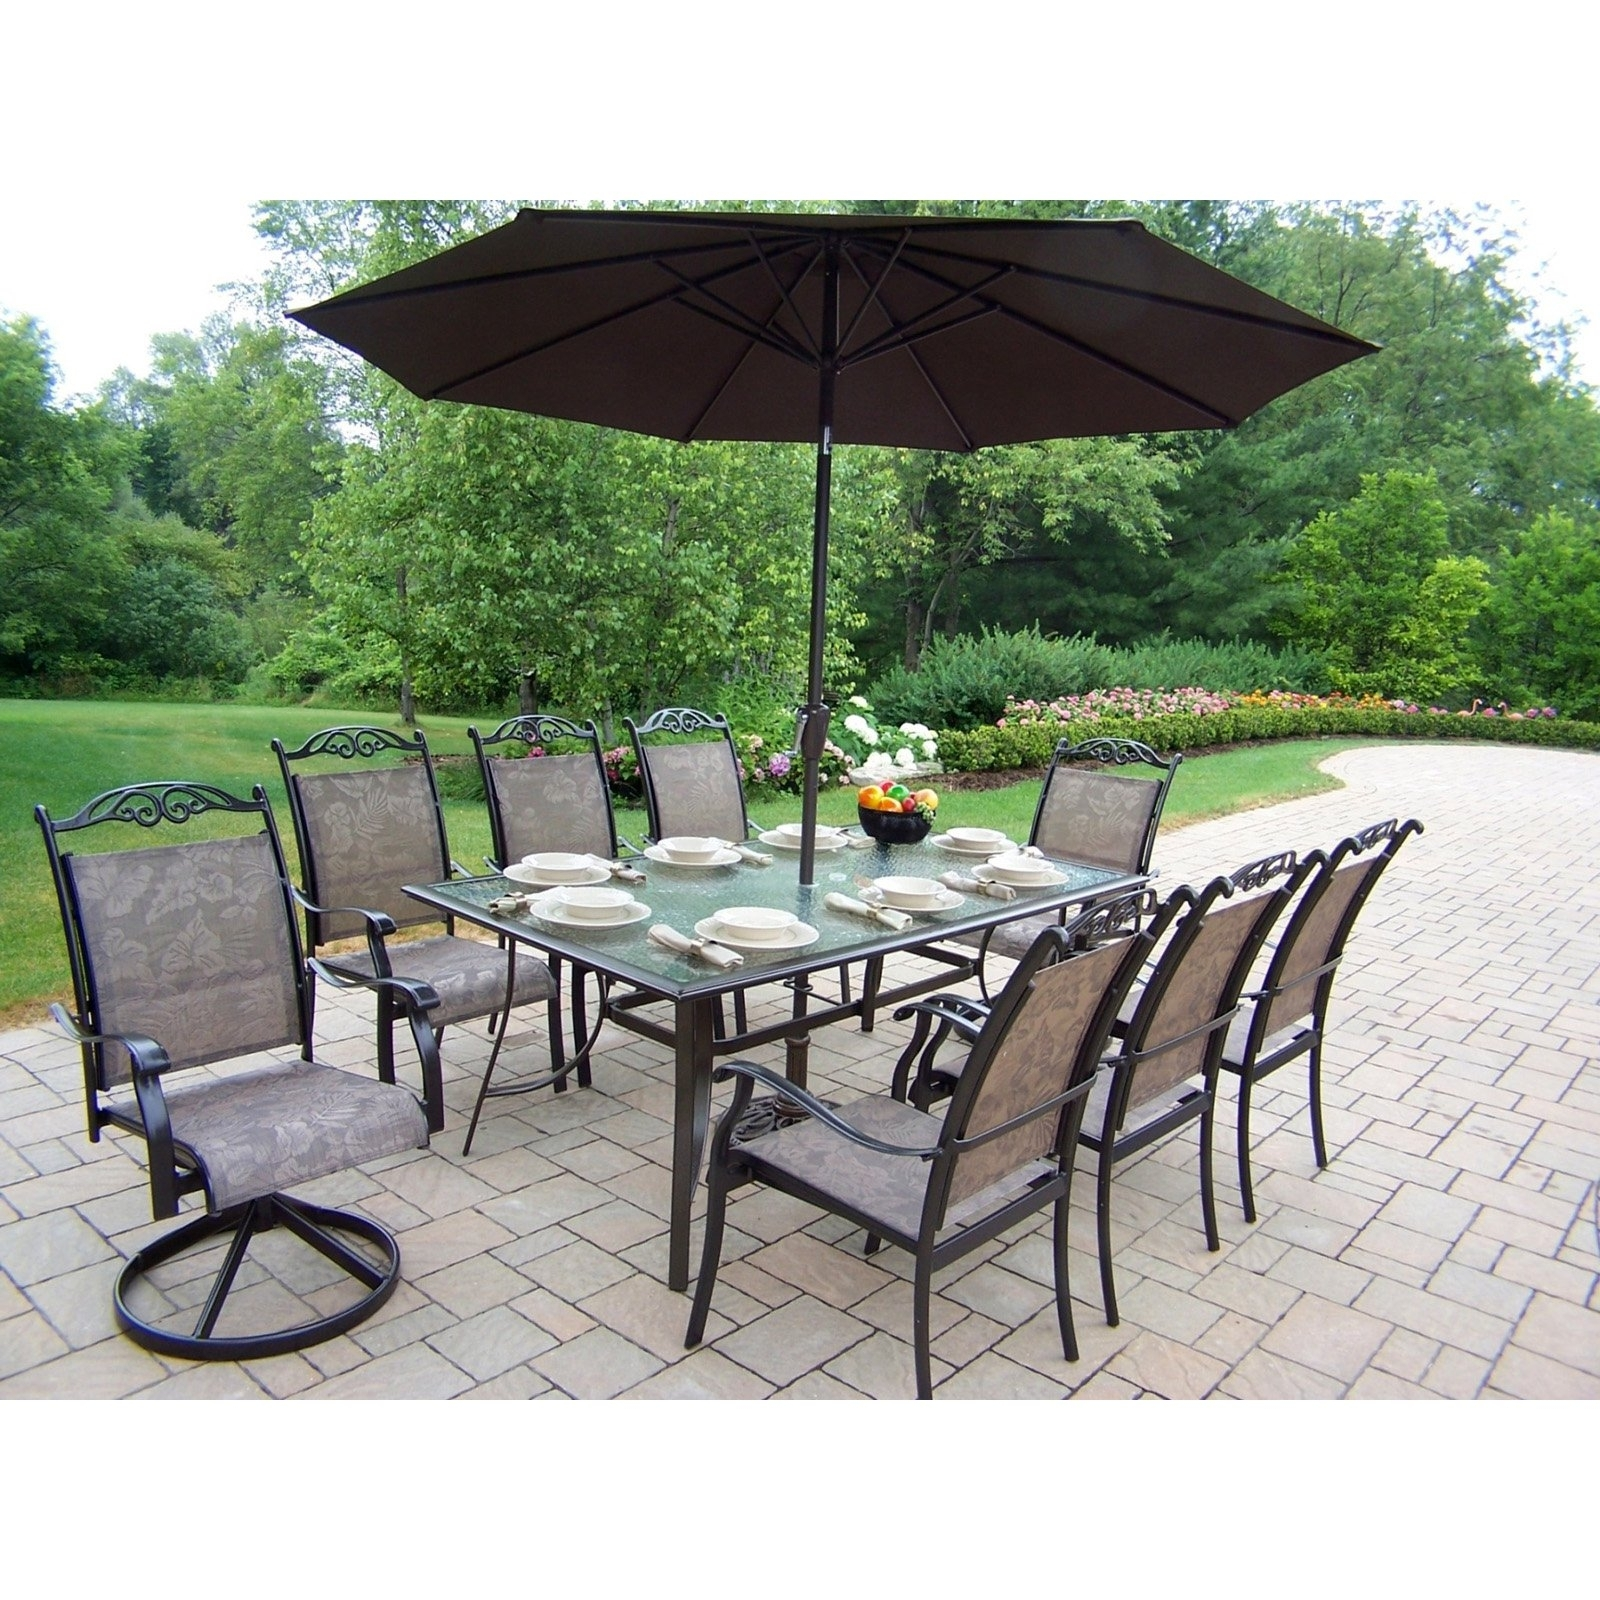 Newest Oakland Living Cascade Patio Dining Set With Umbrella And Stand In Patio Dining Sets With Umbrellas (View 9 of 20)